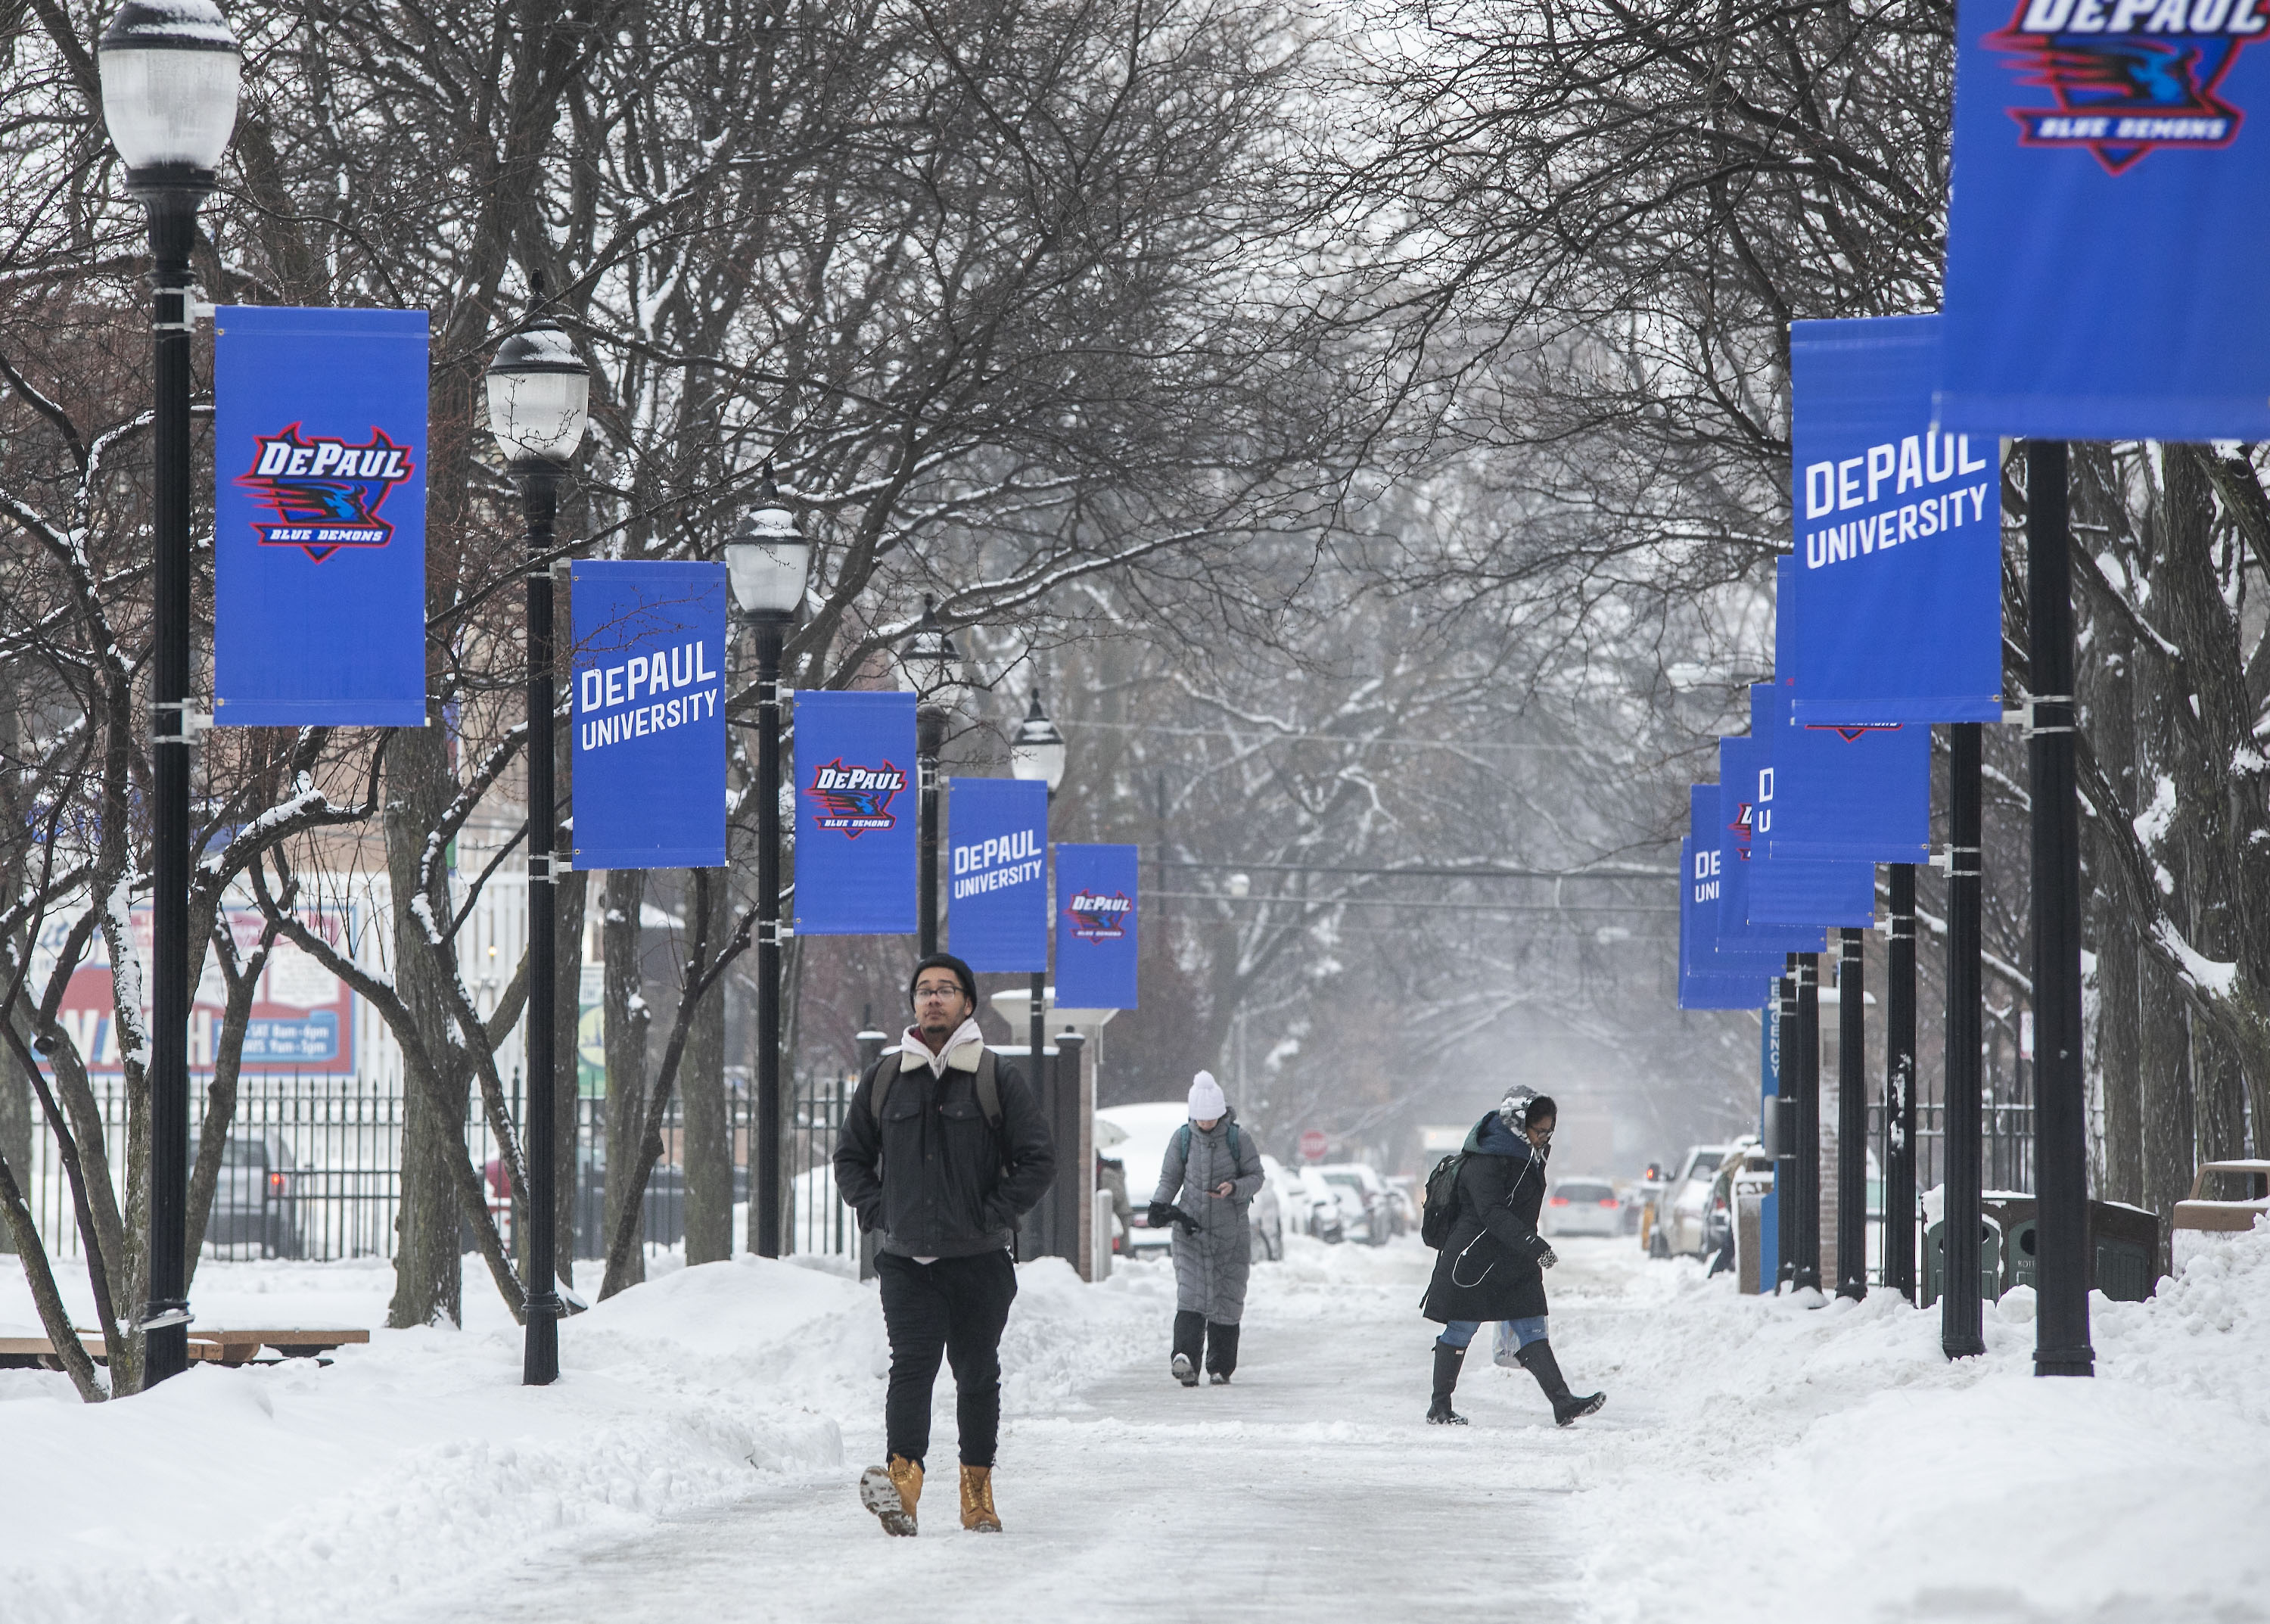 Snow on the Lincoln Park Campus